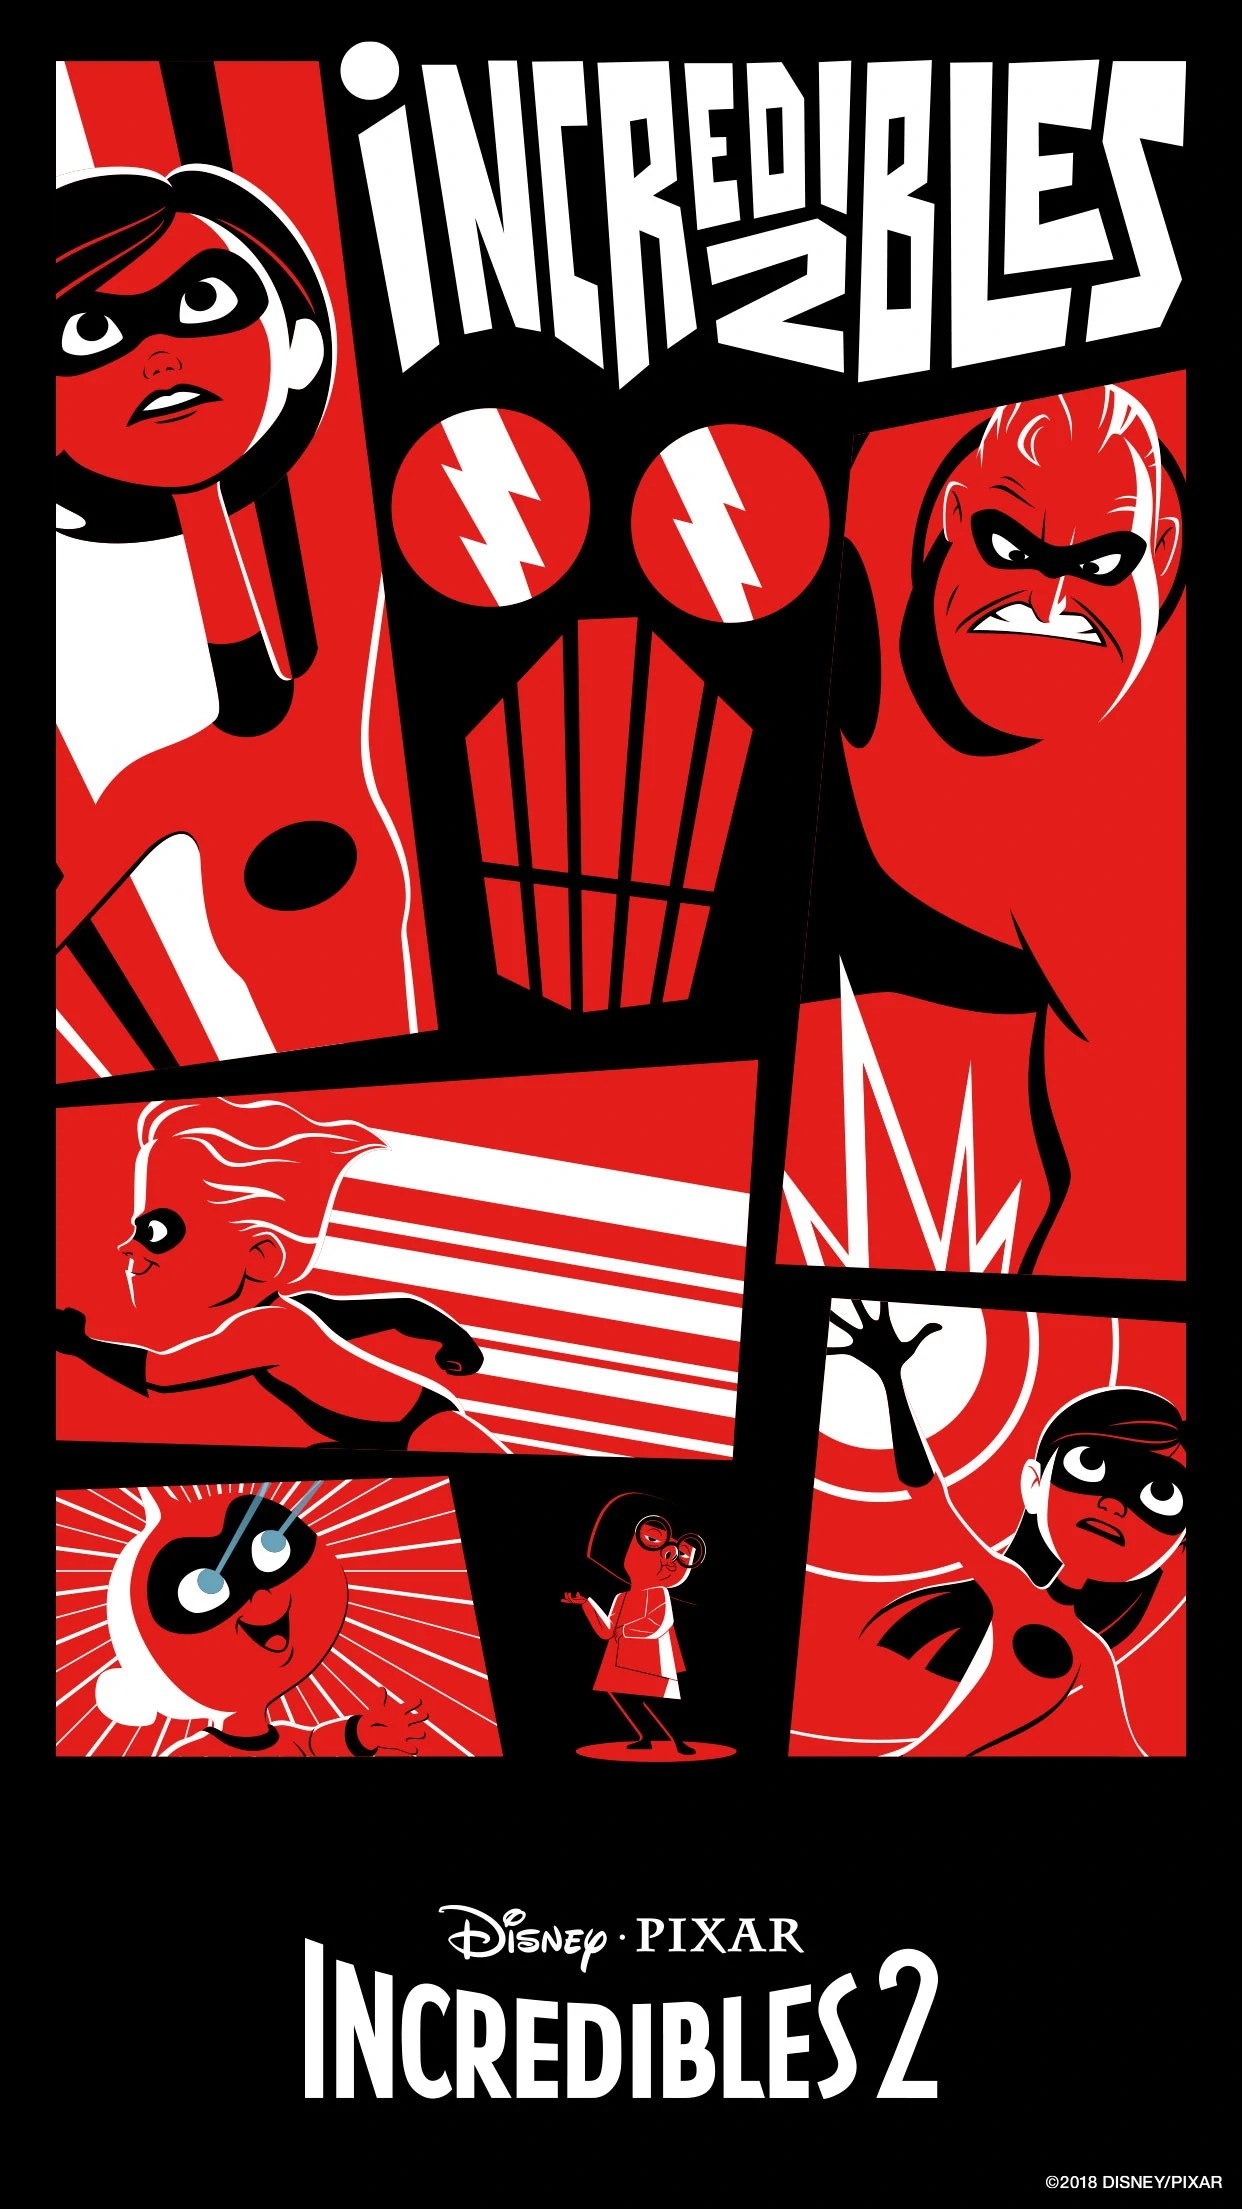 Cute Minnie Mouse Wallpaper Image Incredibles 2 Poster 3 Jpg Disney Wiki